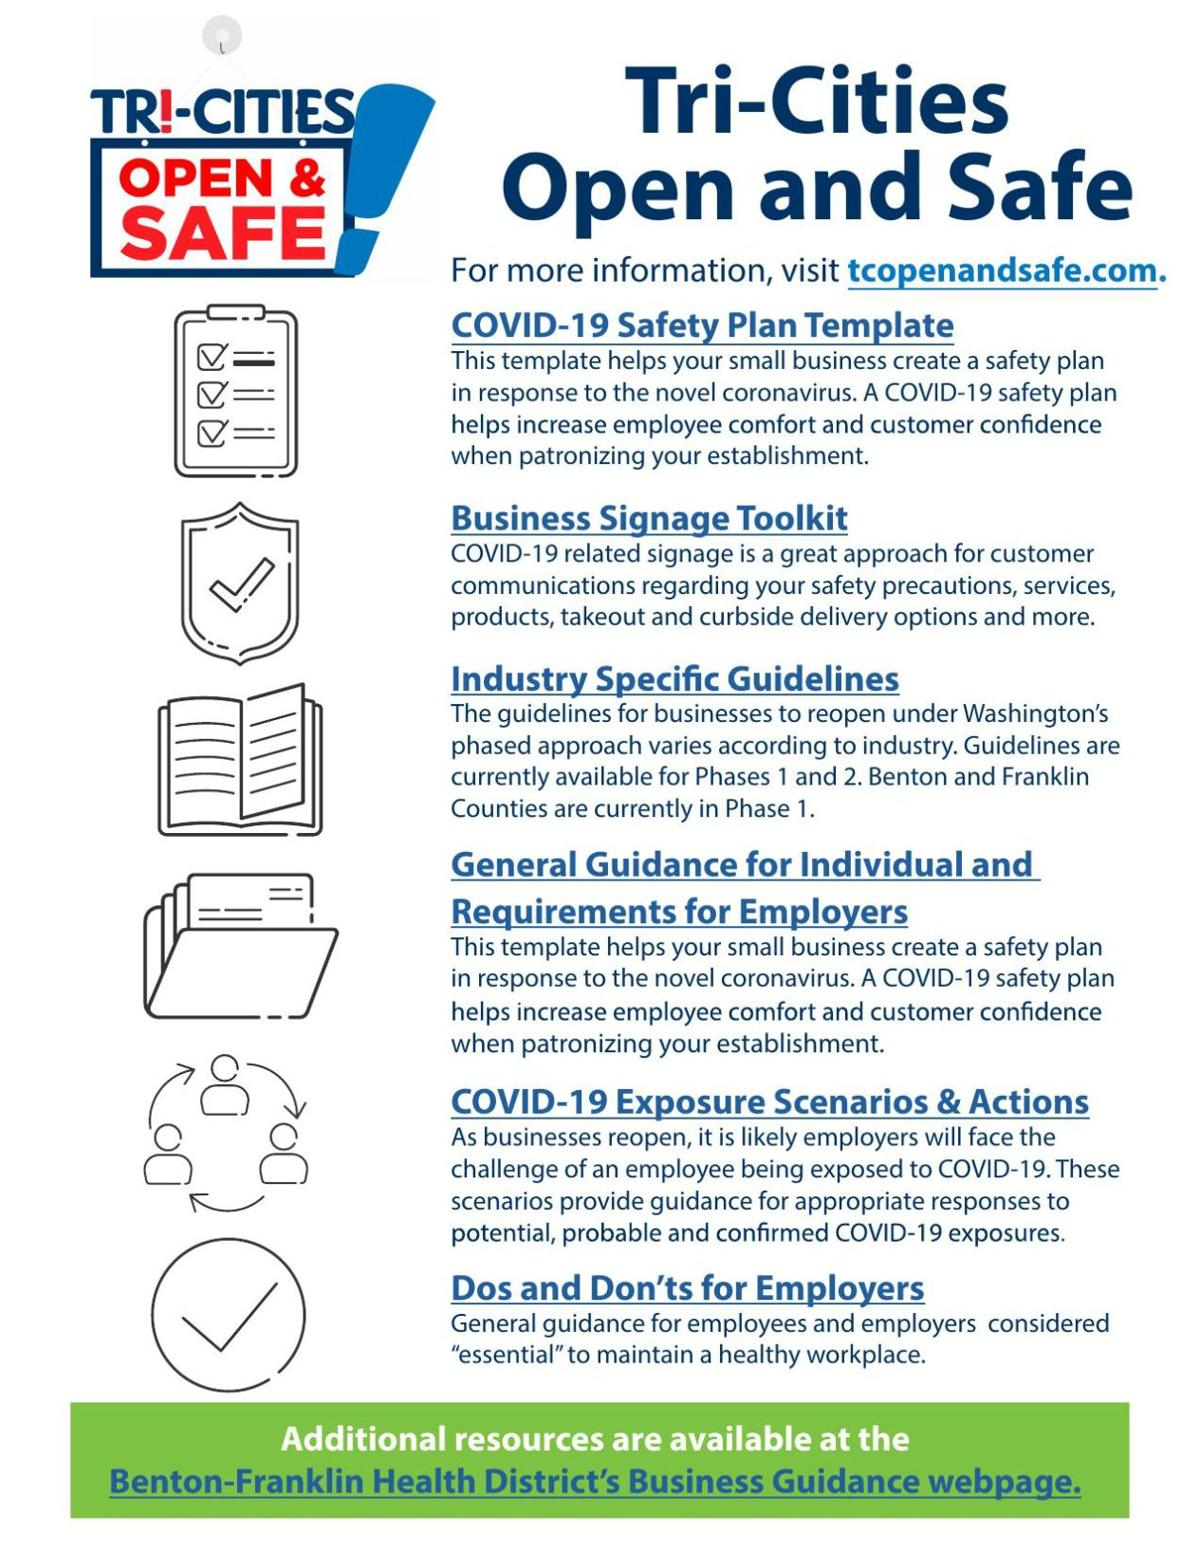 Tri-Cities Open & Safe Resources